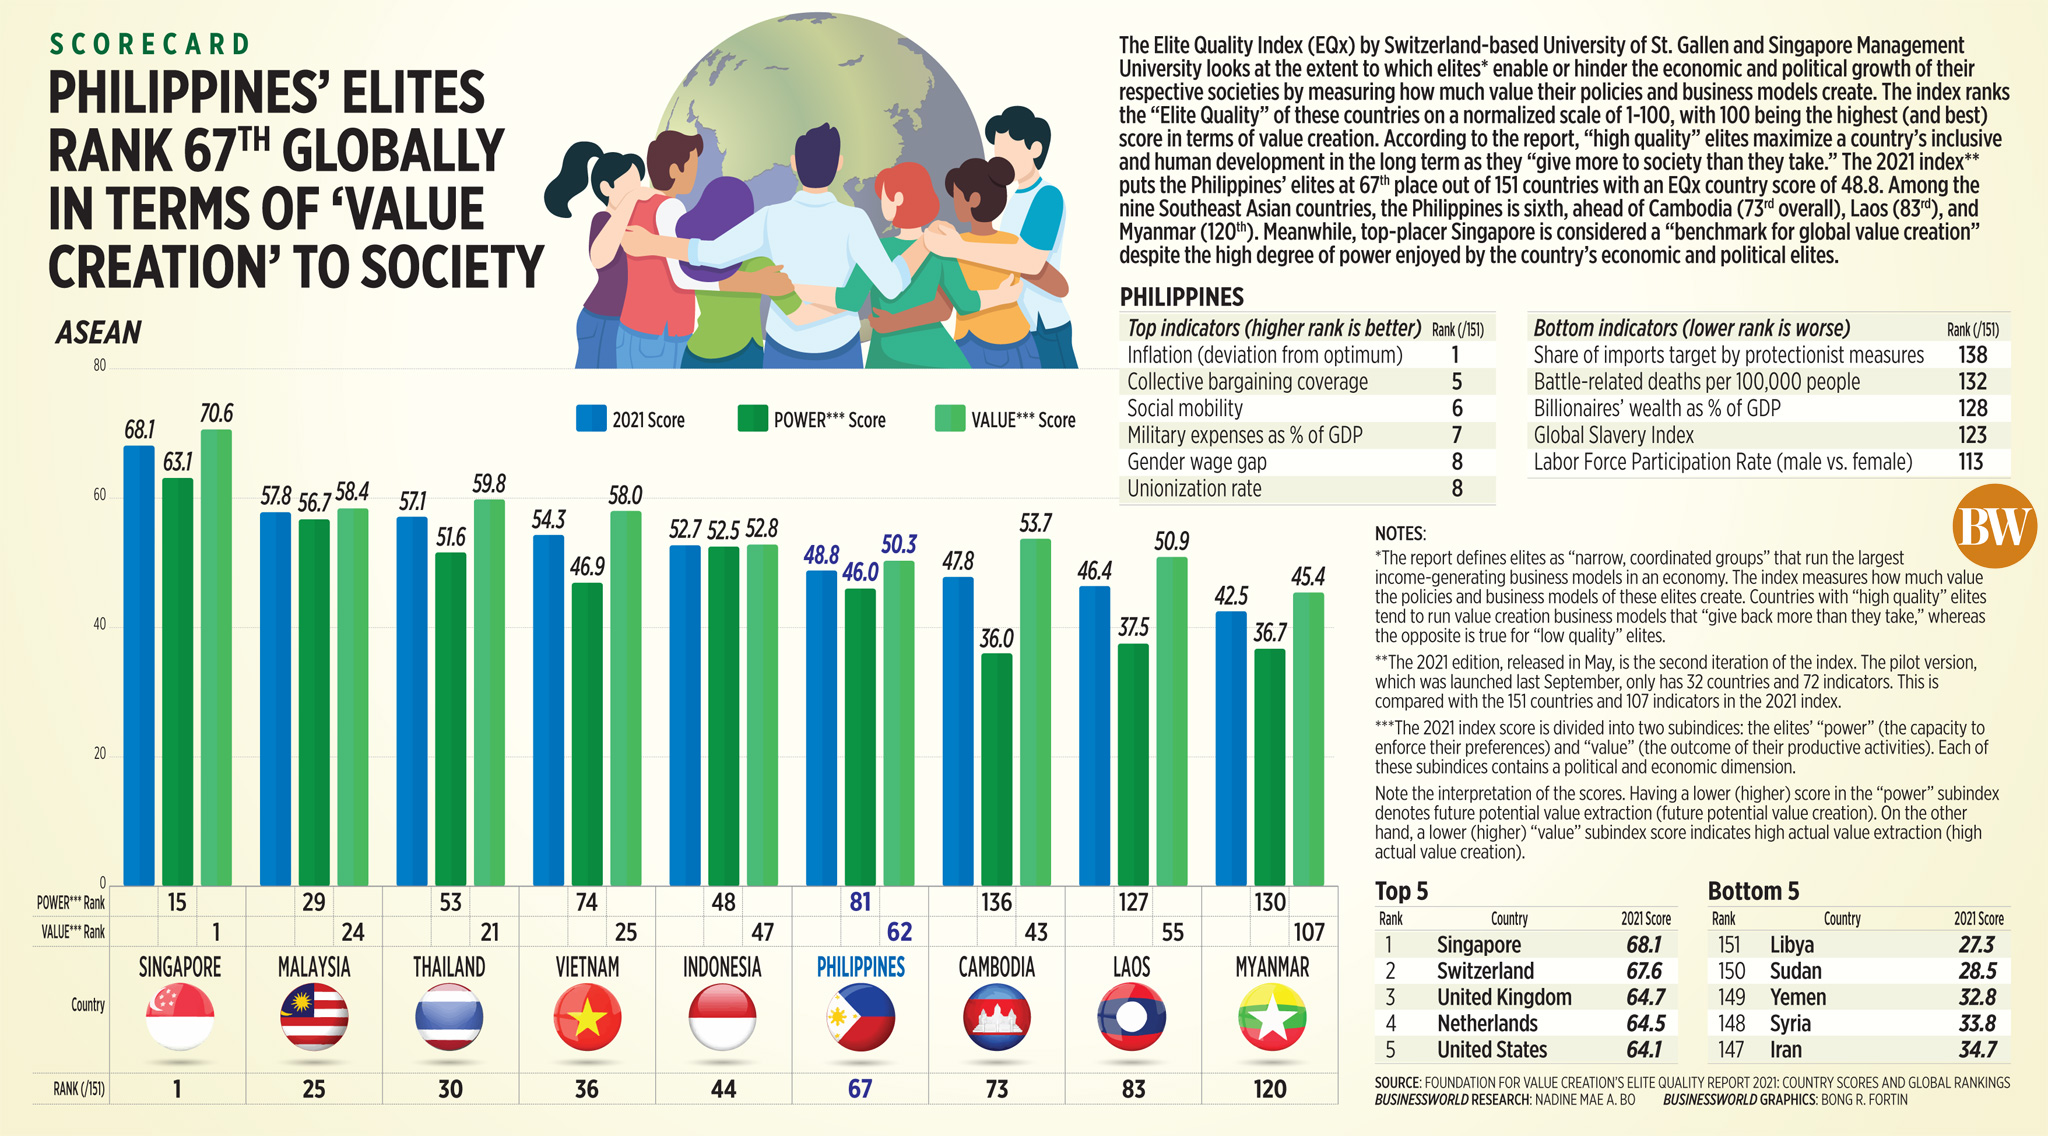 Philippines' elites rank 67<sup>th</sup> globally in terms of 'value creation' to society